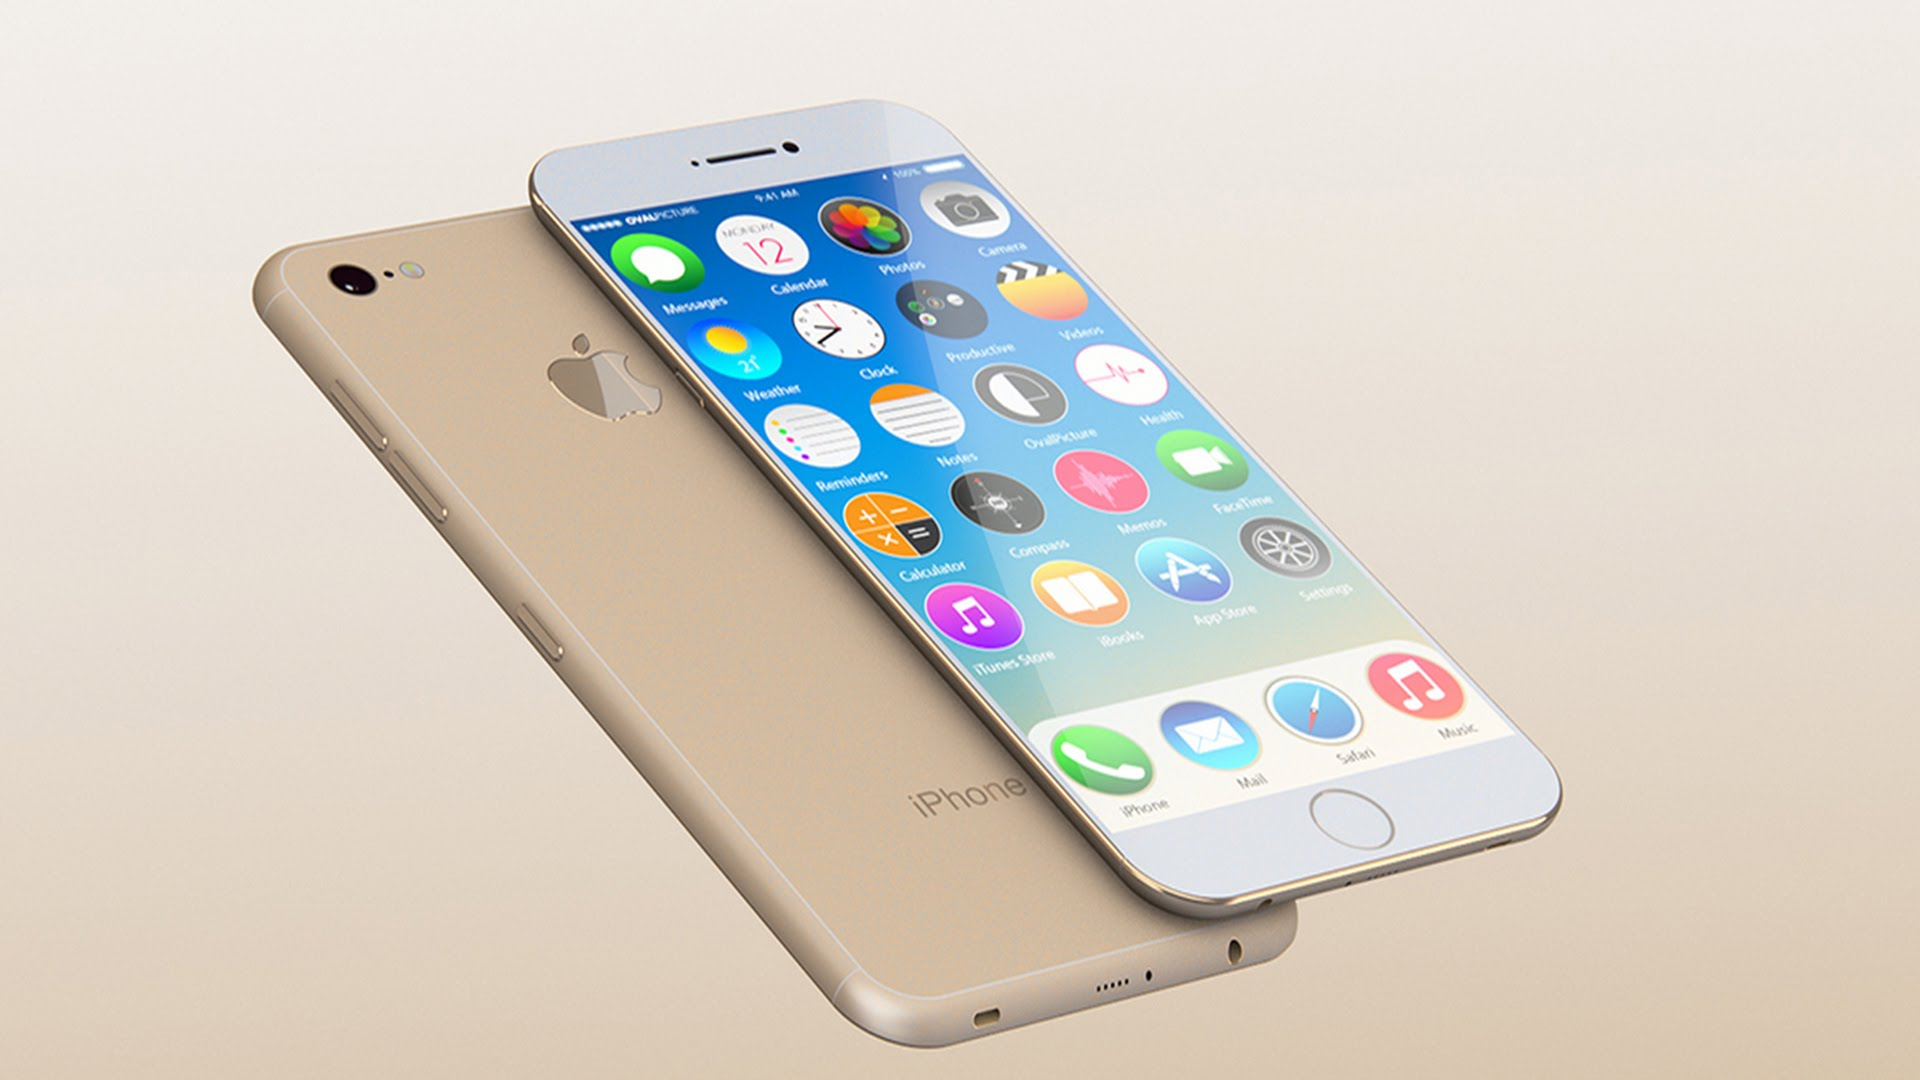 New Smartphones 2016 Rumors: iPhone 7 to be the Thinnest Apple Smartphone Ever, Microsoft to Release a New Mid-Range Nokia Lumia